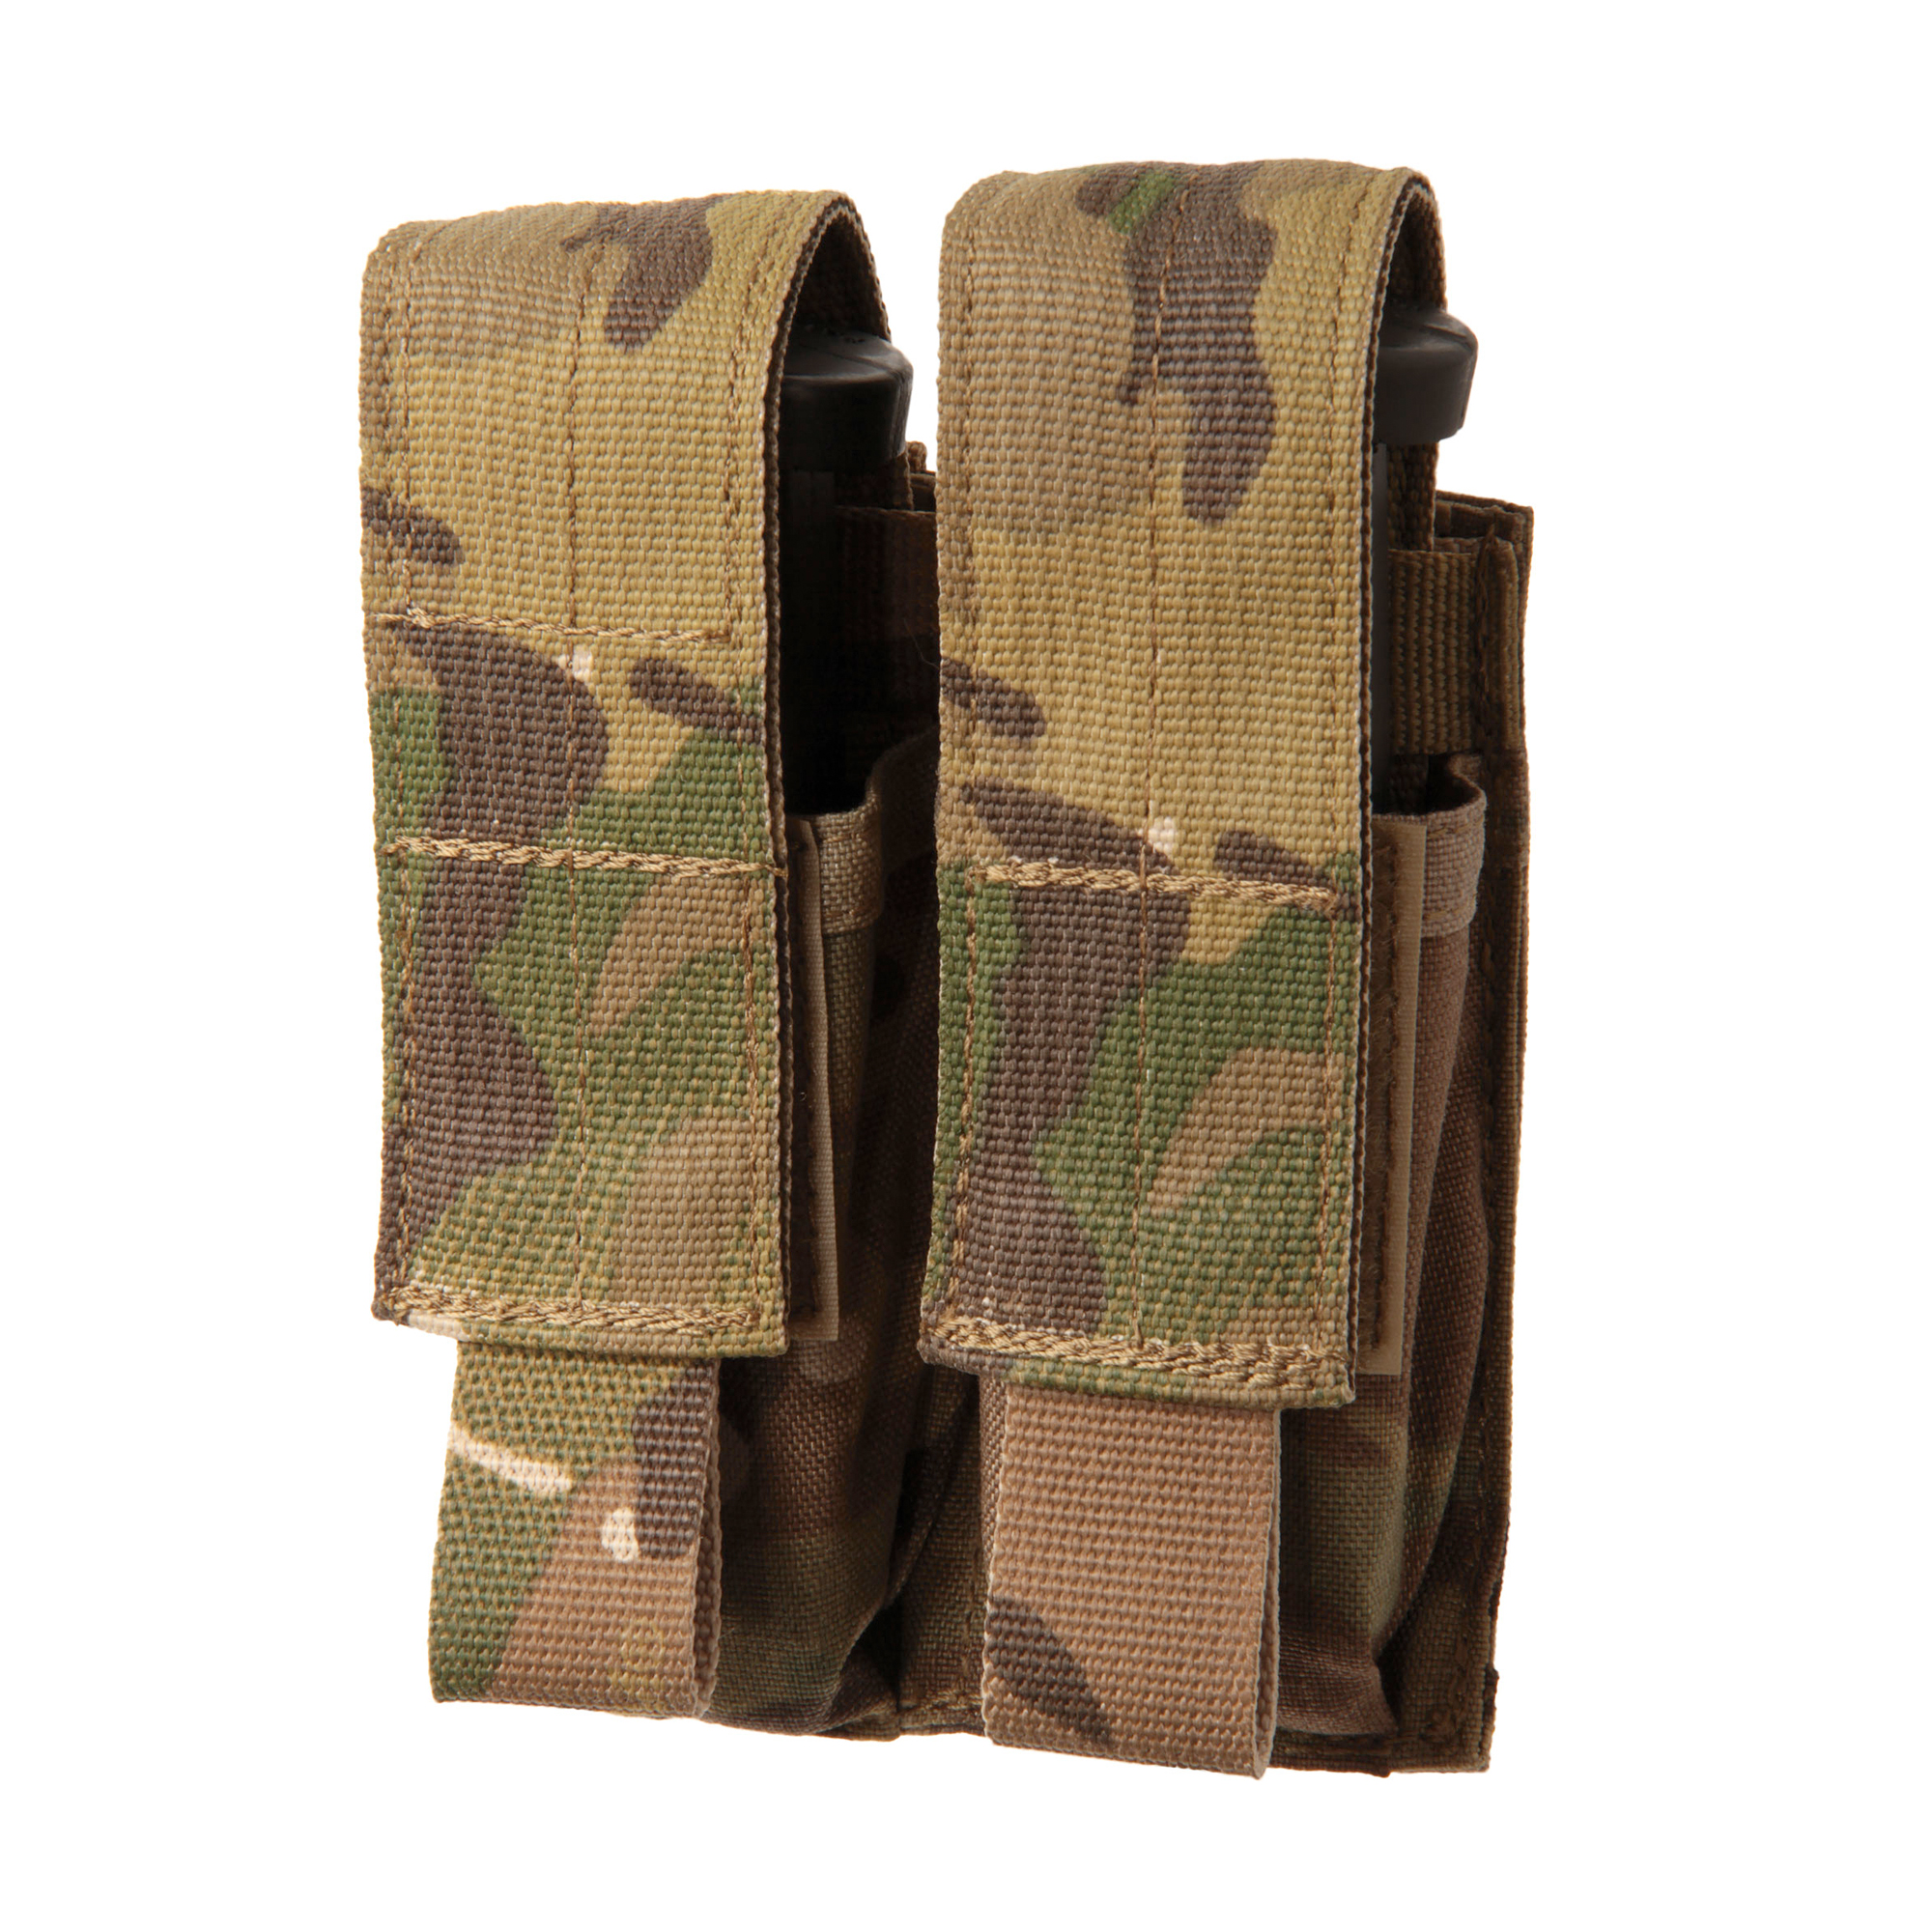 "Strike double pistol magazine pouch holds two pistol magazines. Hybrid design allows for Speed Clip mounting to vest or other MOLLE compatible platform as well as belt mounting up to 2.5"" using A.L.I.C.E. clips (A.L.I.C.E. clips not included)"